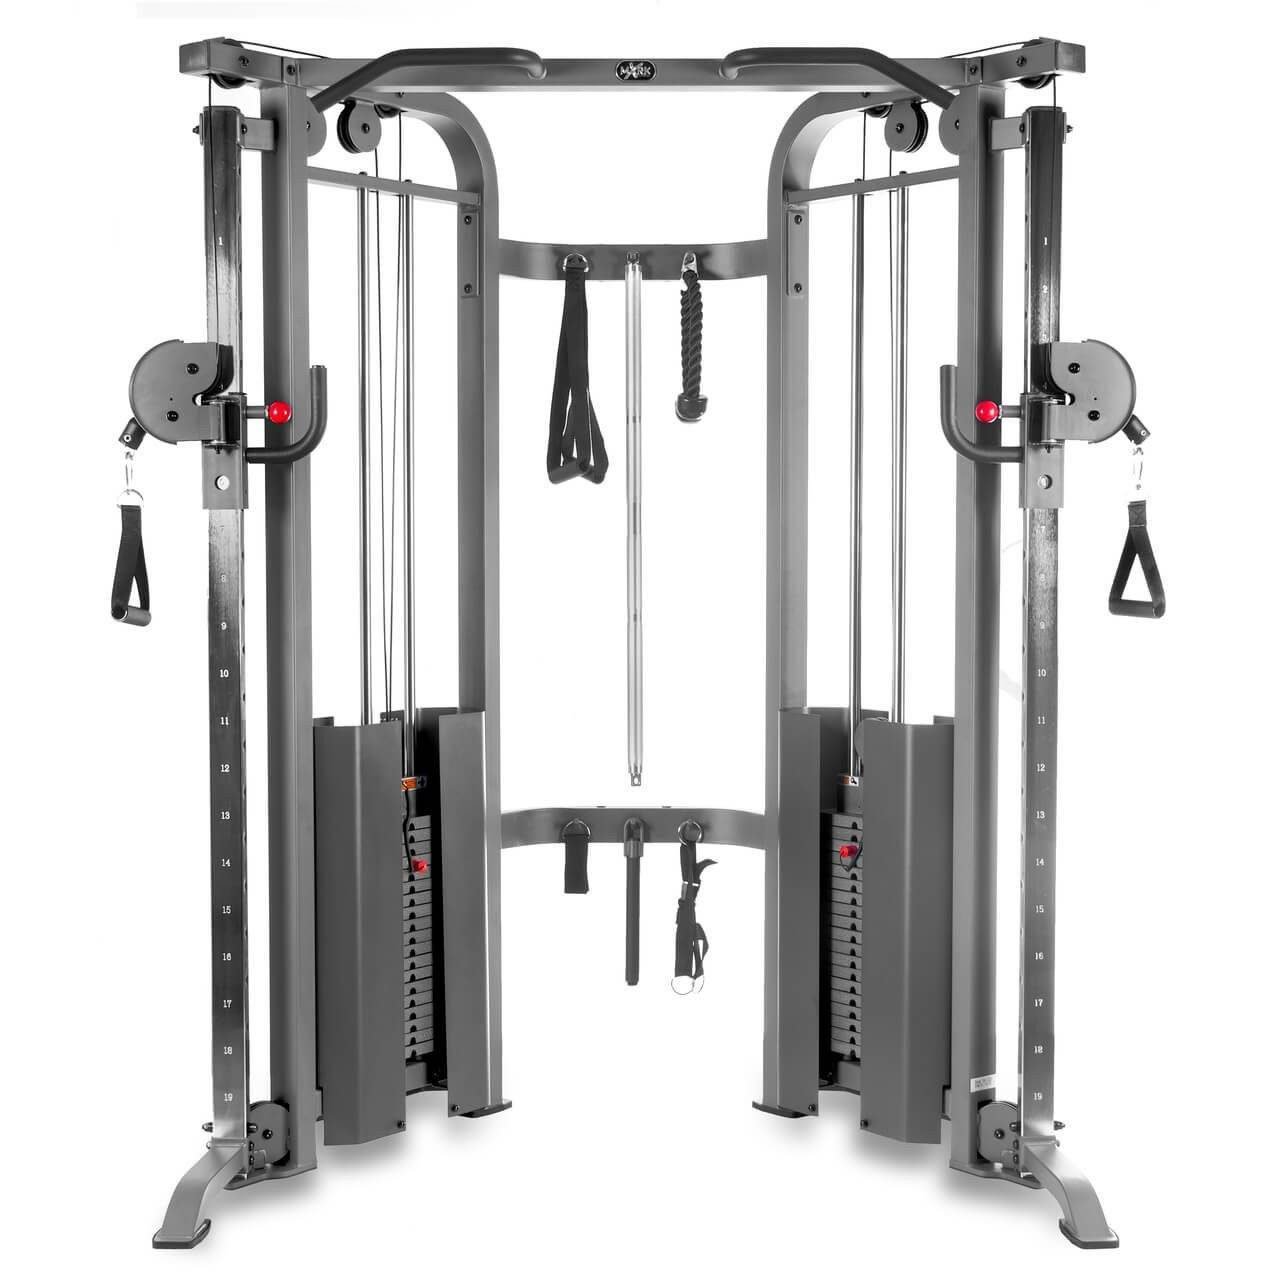 Lesser-known functional trainer exercises